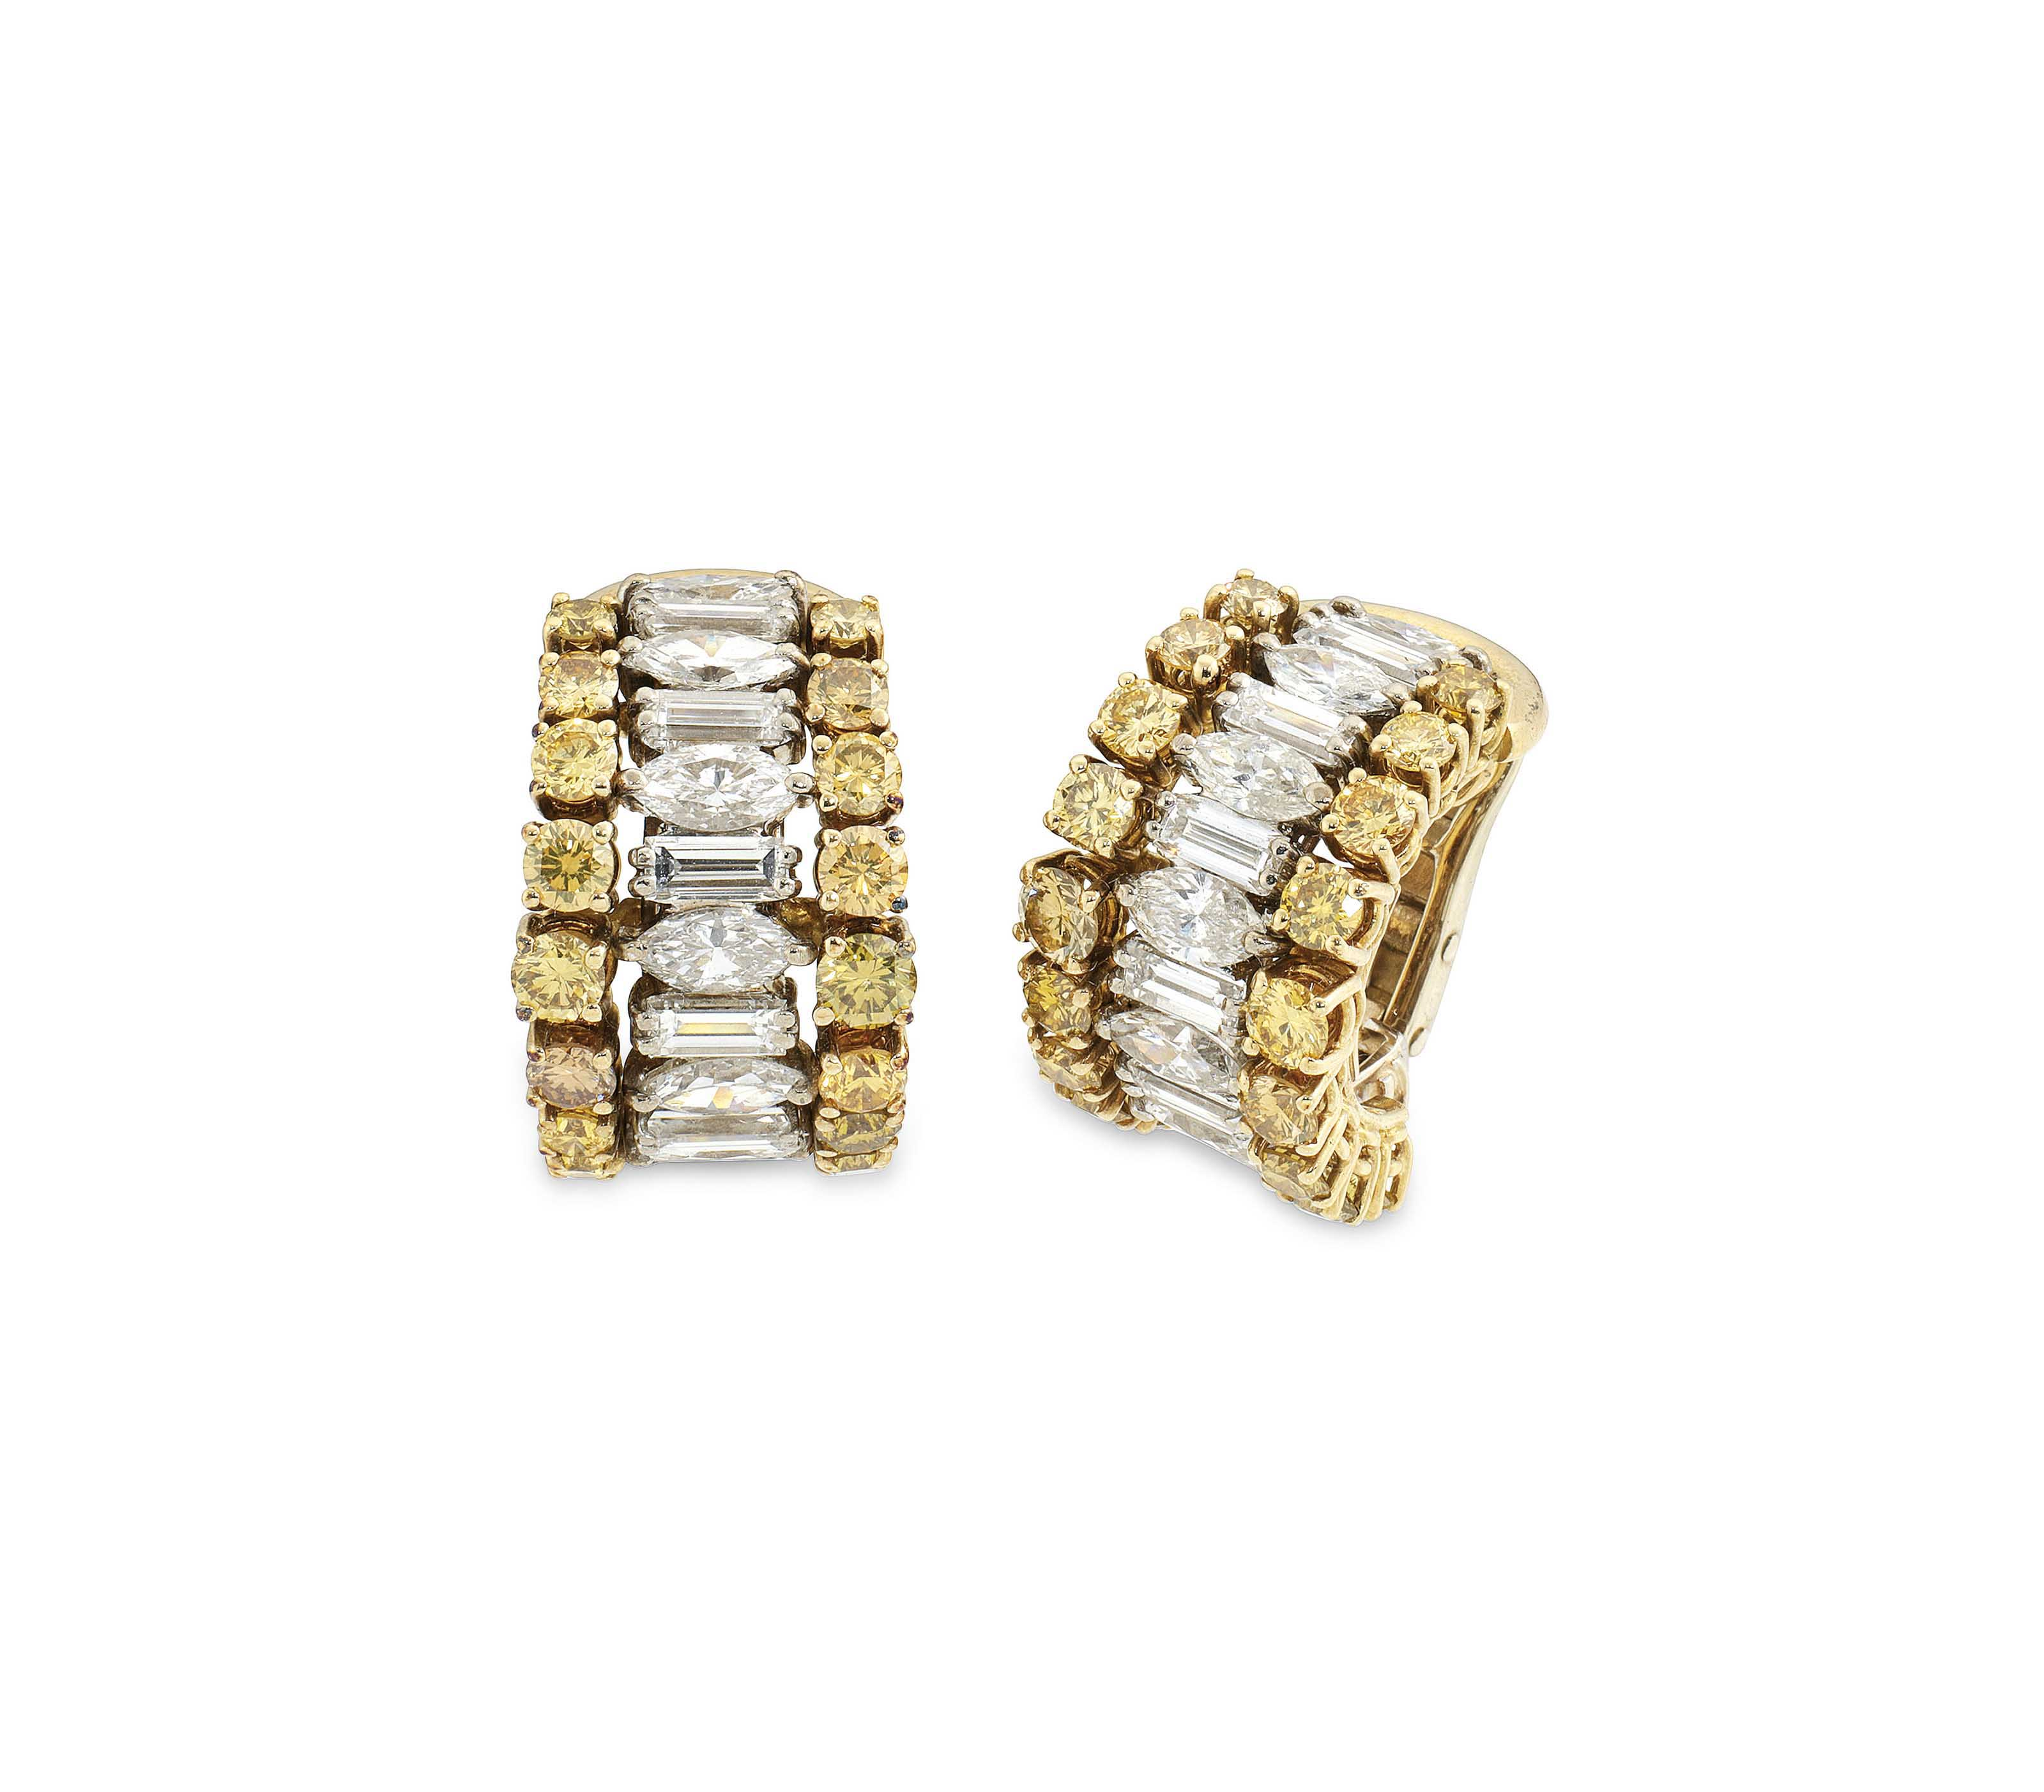 A PAIR OF COLOURED DIAMOND AND DIAMOND EARRINGS, BY ANDREW GRIMA